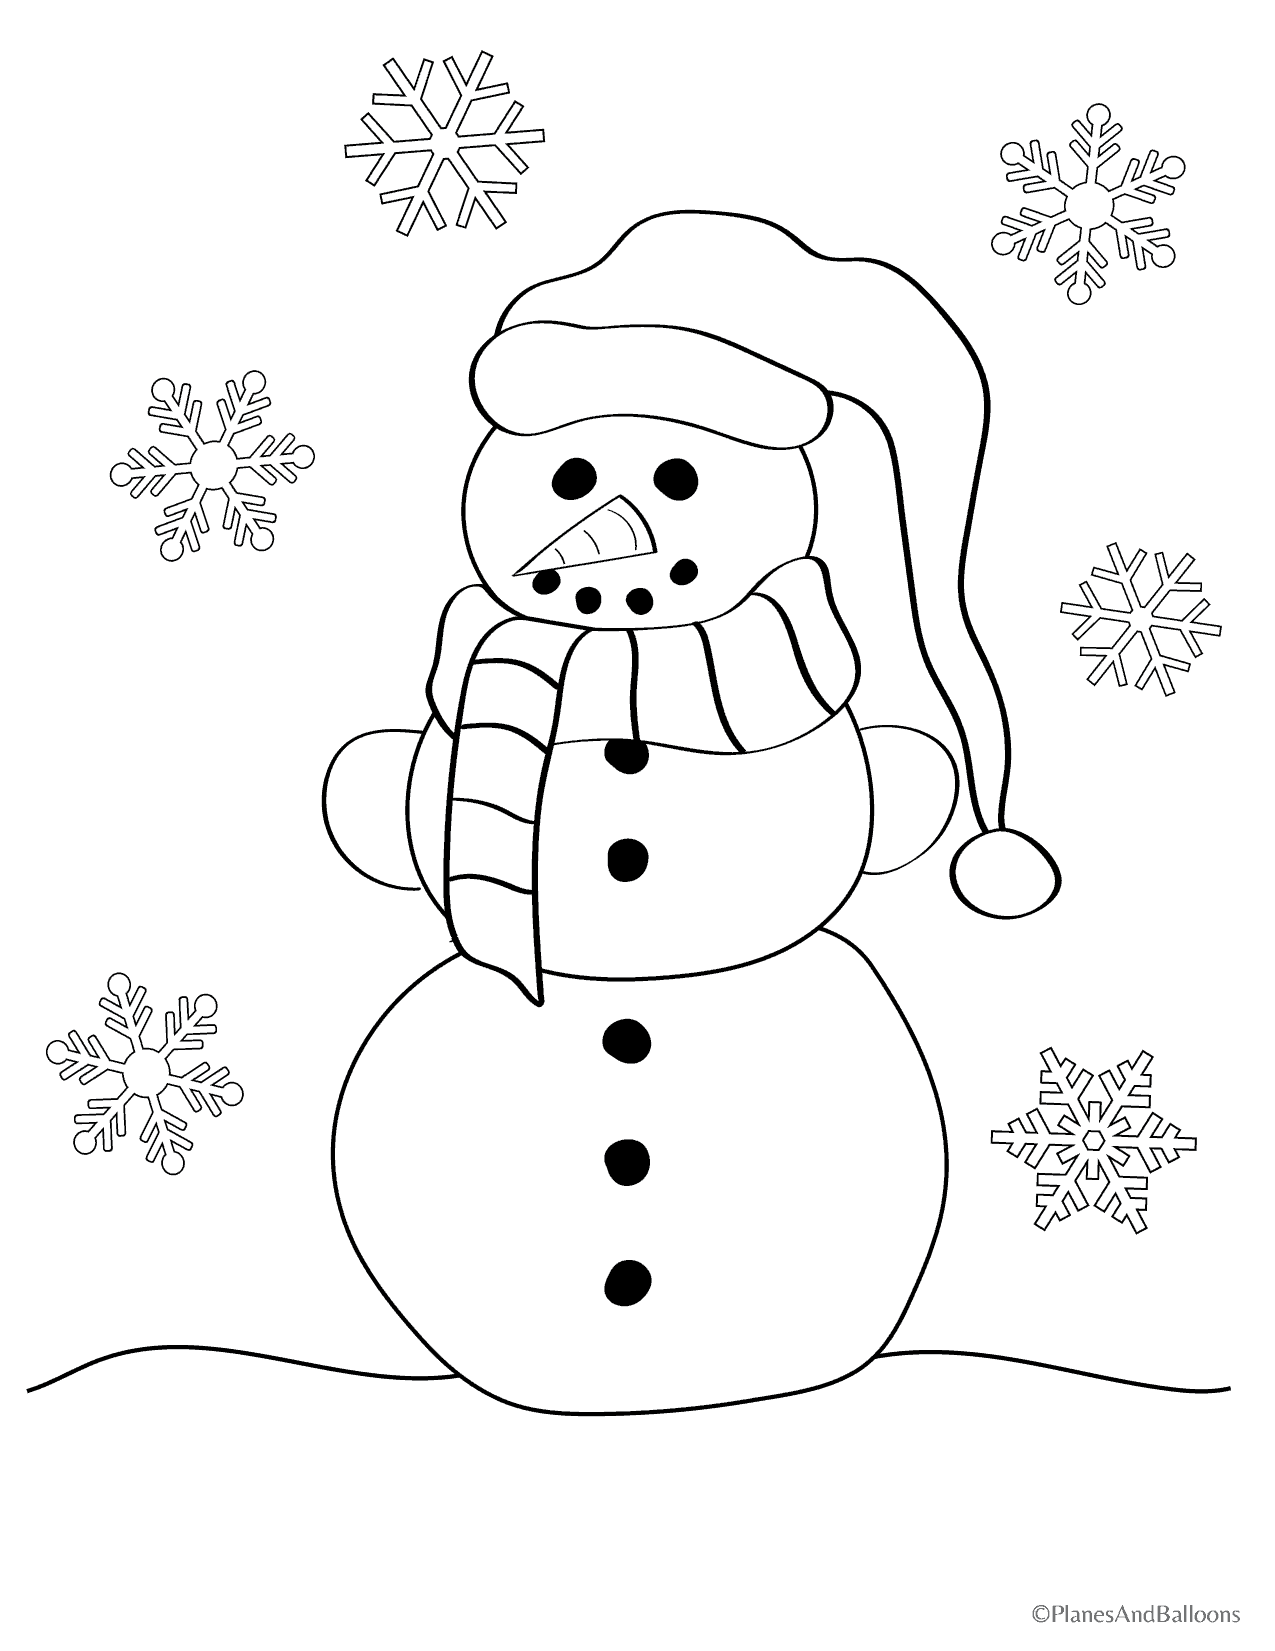 snowmancoloring sheets snowman coloring pages for all the kids who love winter sheets snowmancoloring